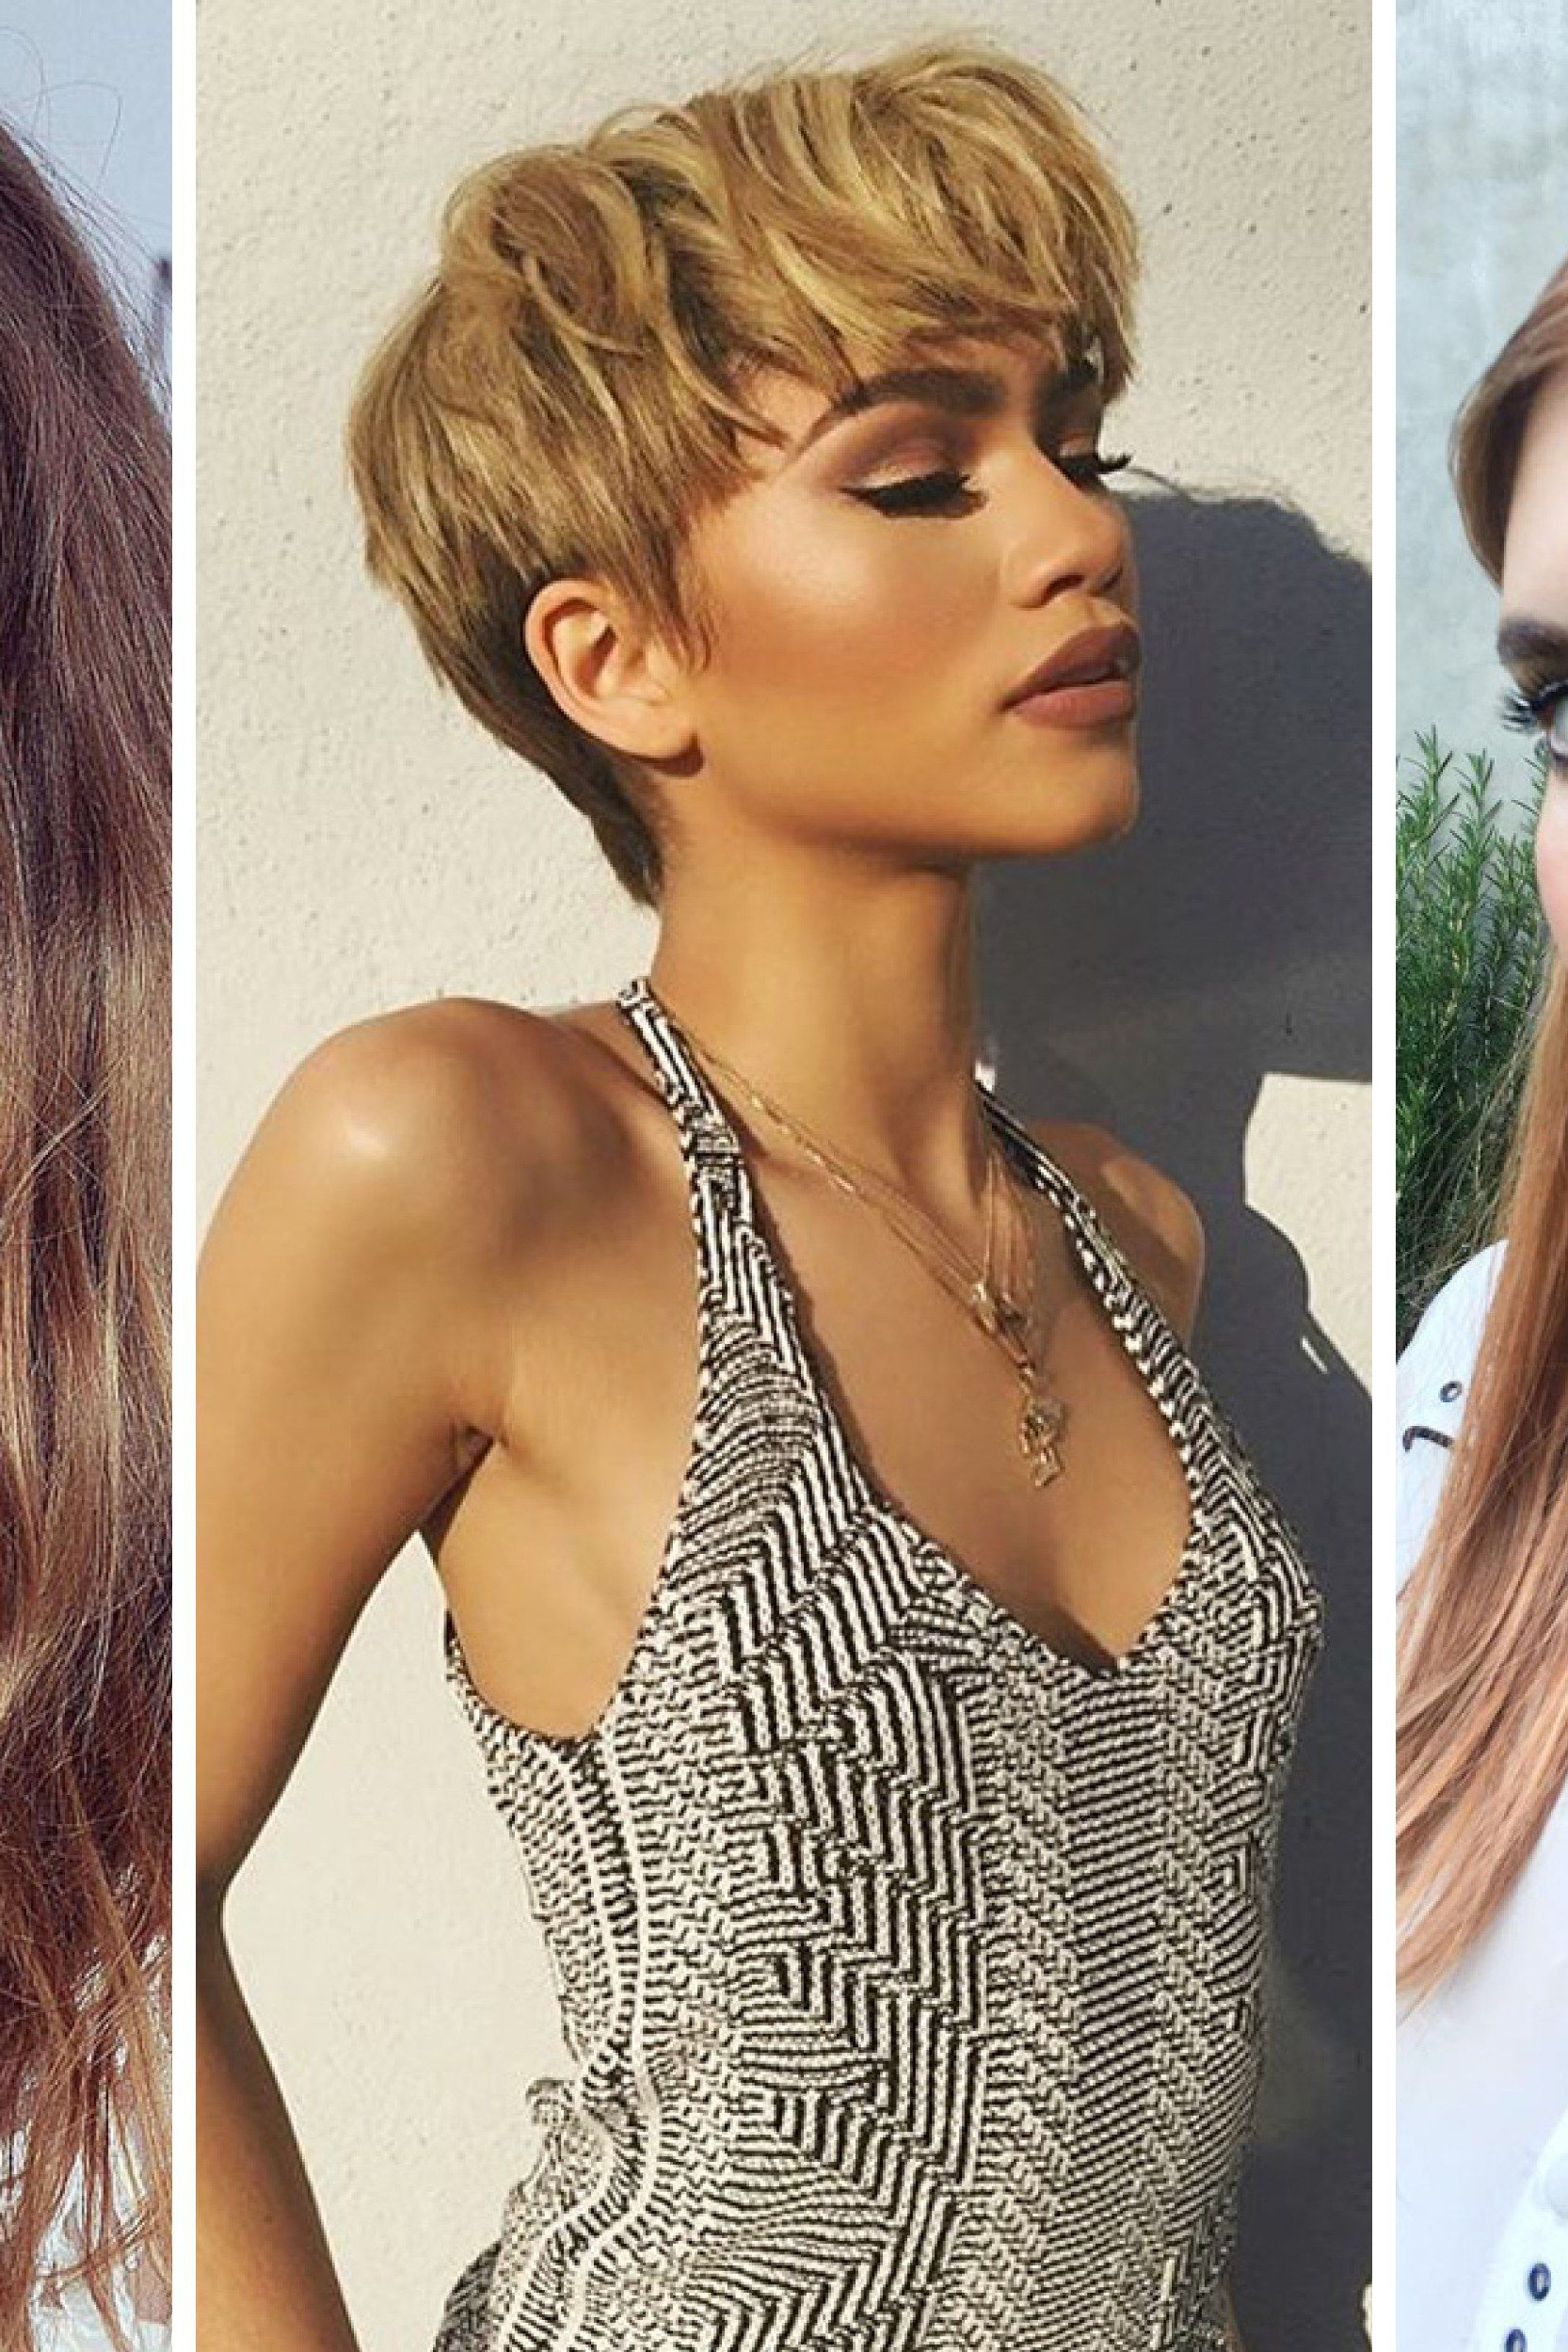 12 Foolproof Hairstyles That Will Look Good With And Without Your With Short Hair Graduation Cap (View 19 of 25)